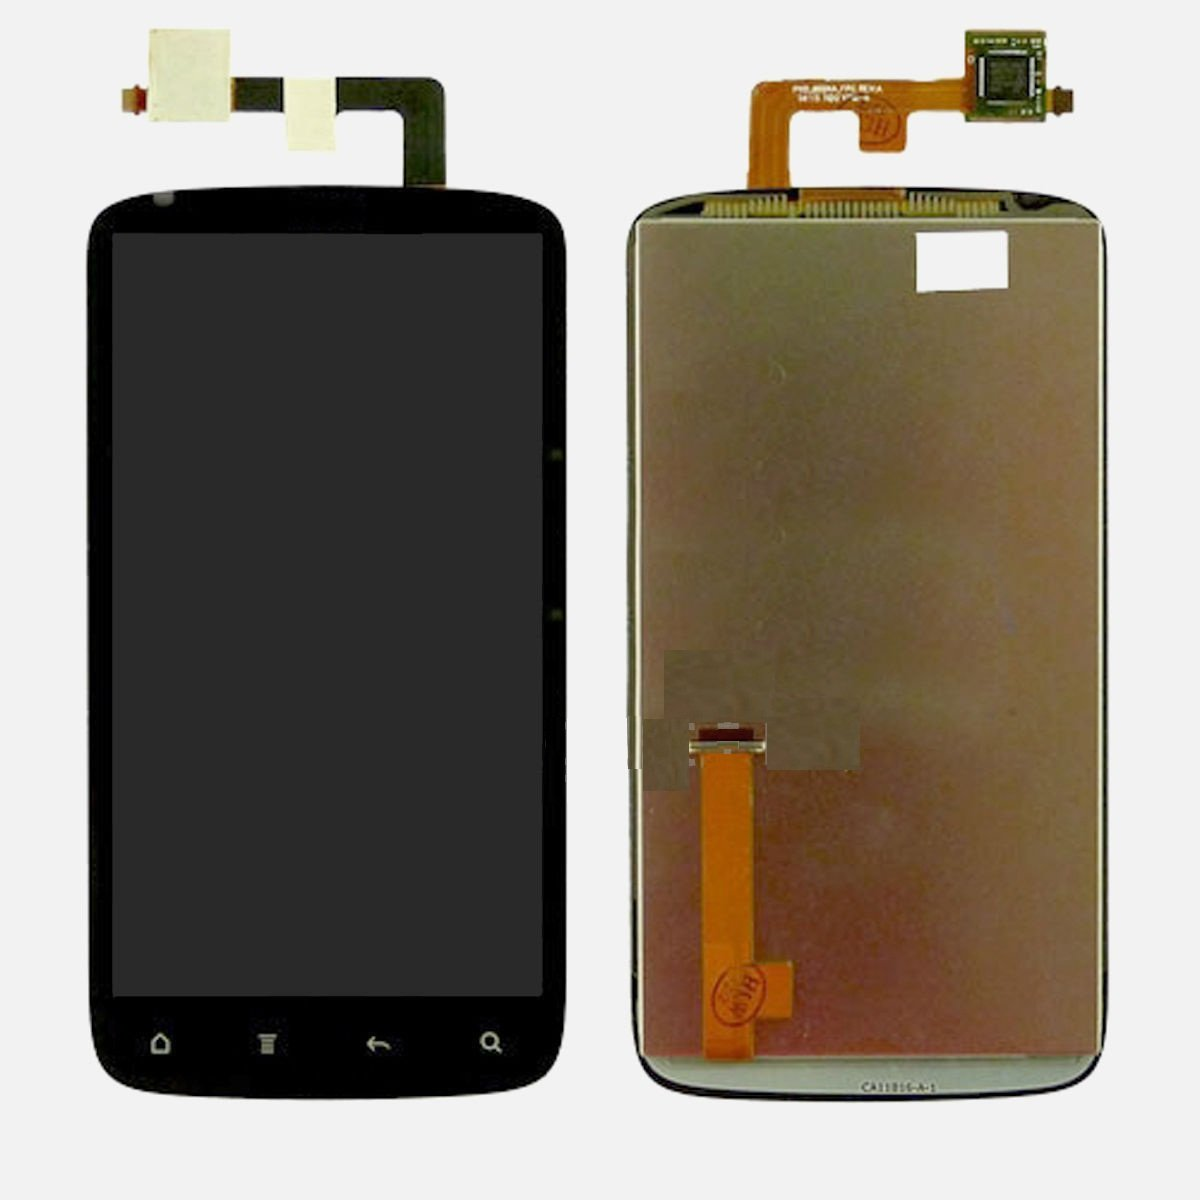 HTC Sensation 4G LCD Screen Display + Digitizer Touch Outer Glass Lens Assembly